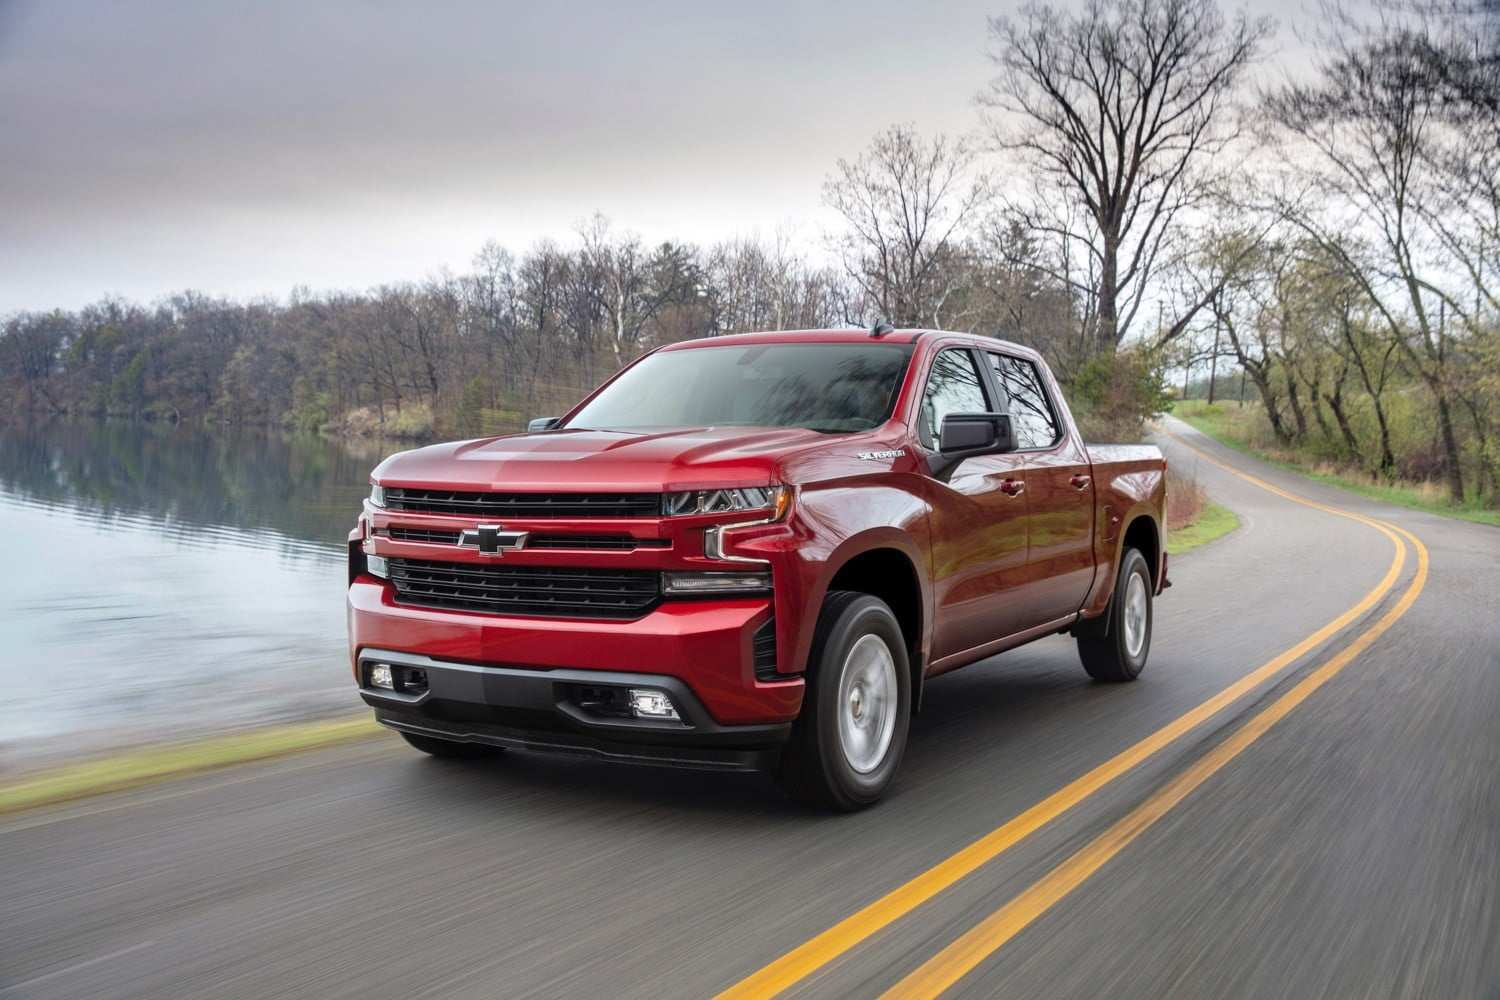 69 Gallery of Best 2019 Gmc Engine Options Review And Price Wallpaper by Best 2019 Gmc Engine Options Review And Price